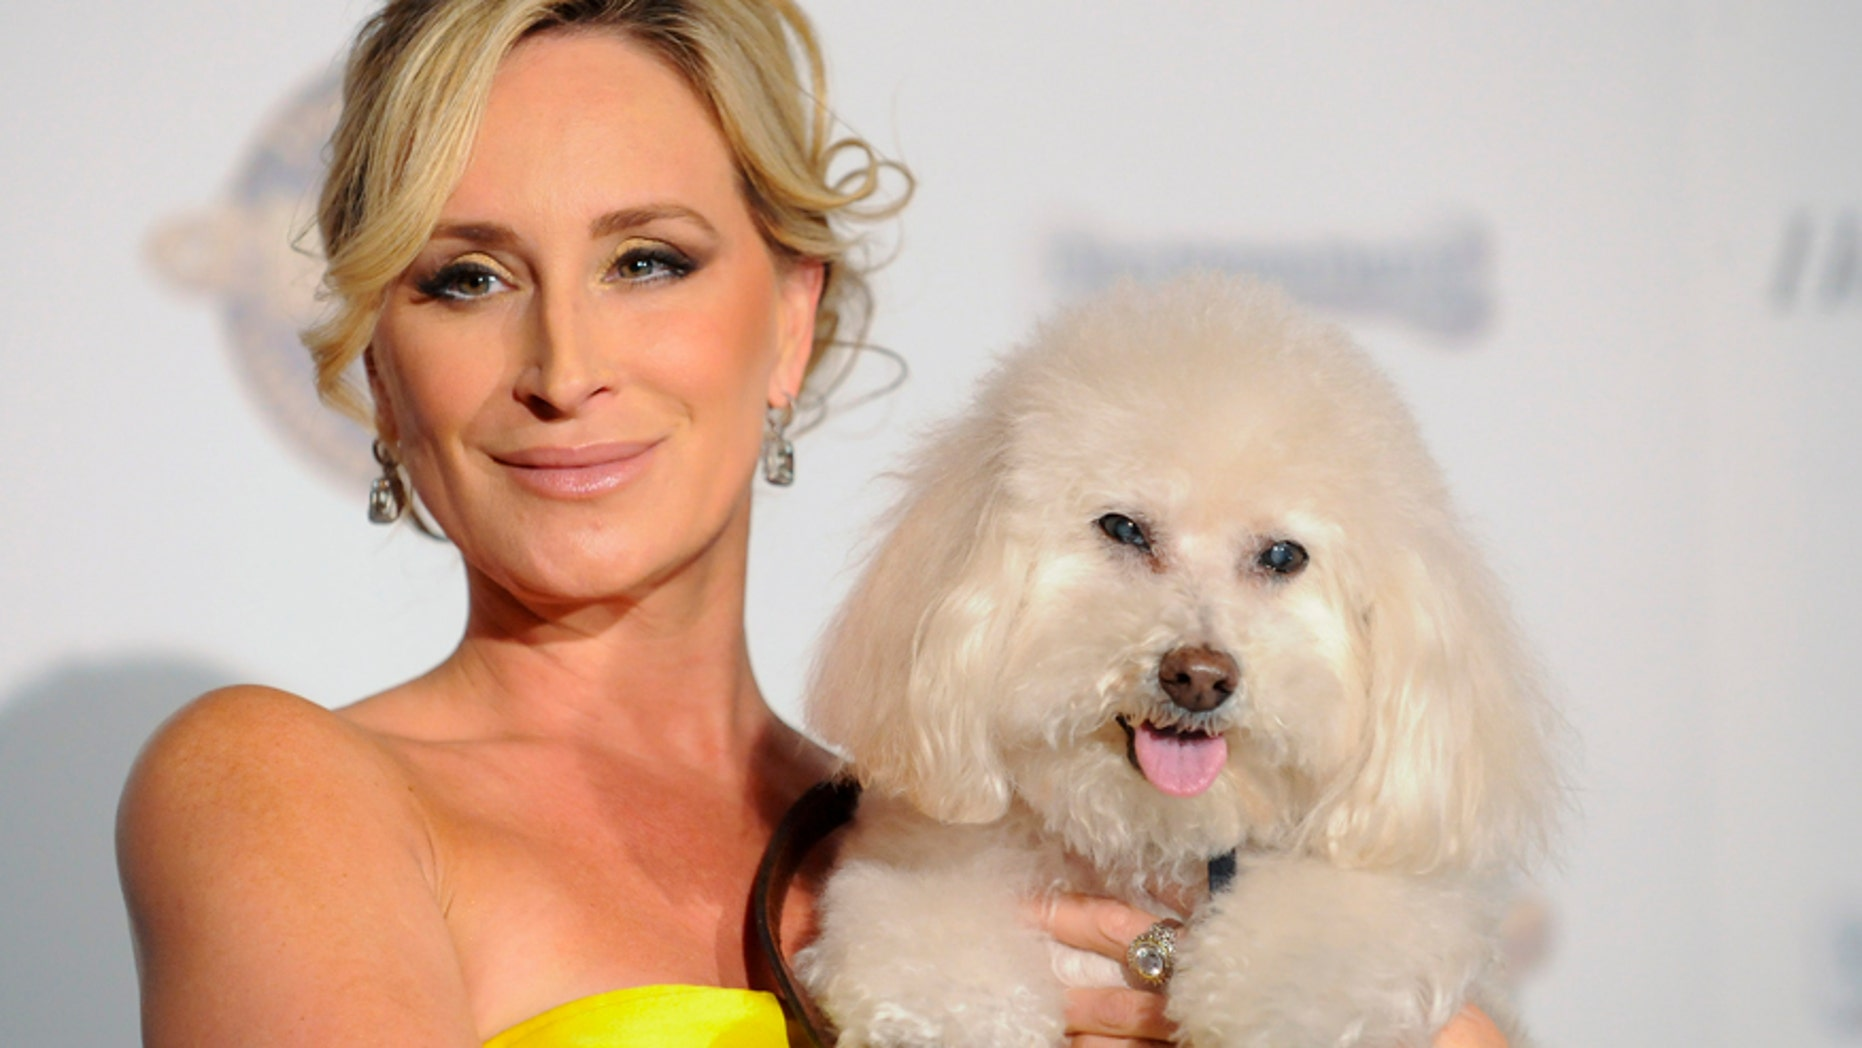 """""""Real Housewives of New York"""" star Sonja Morgan and her dog Millou arrive at the first annual Golden Collar Awards celebrating Hollywood's most talented canine thespians from Oscar nominated films and Emmy Award winning television shows in Los Angeles, California February 13, 2012."""